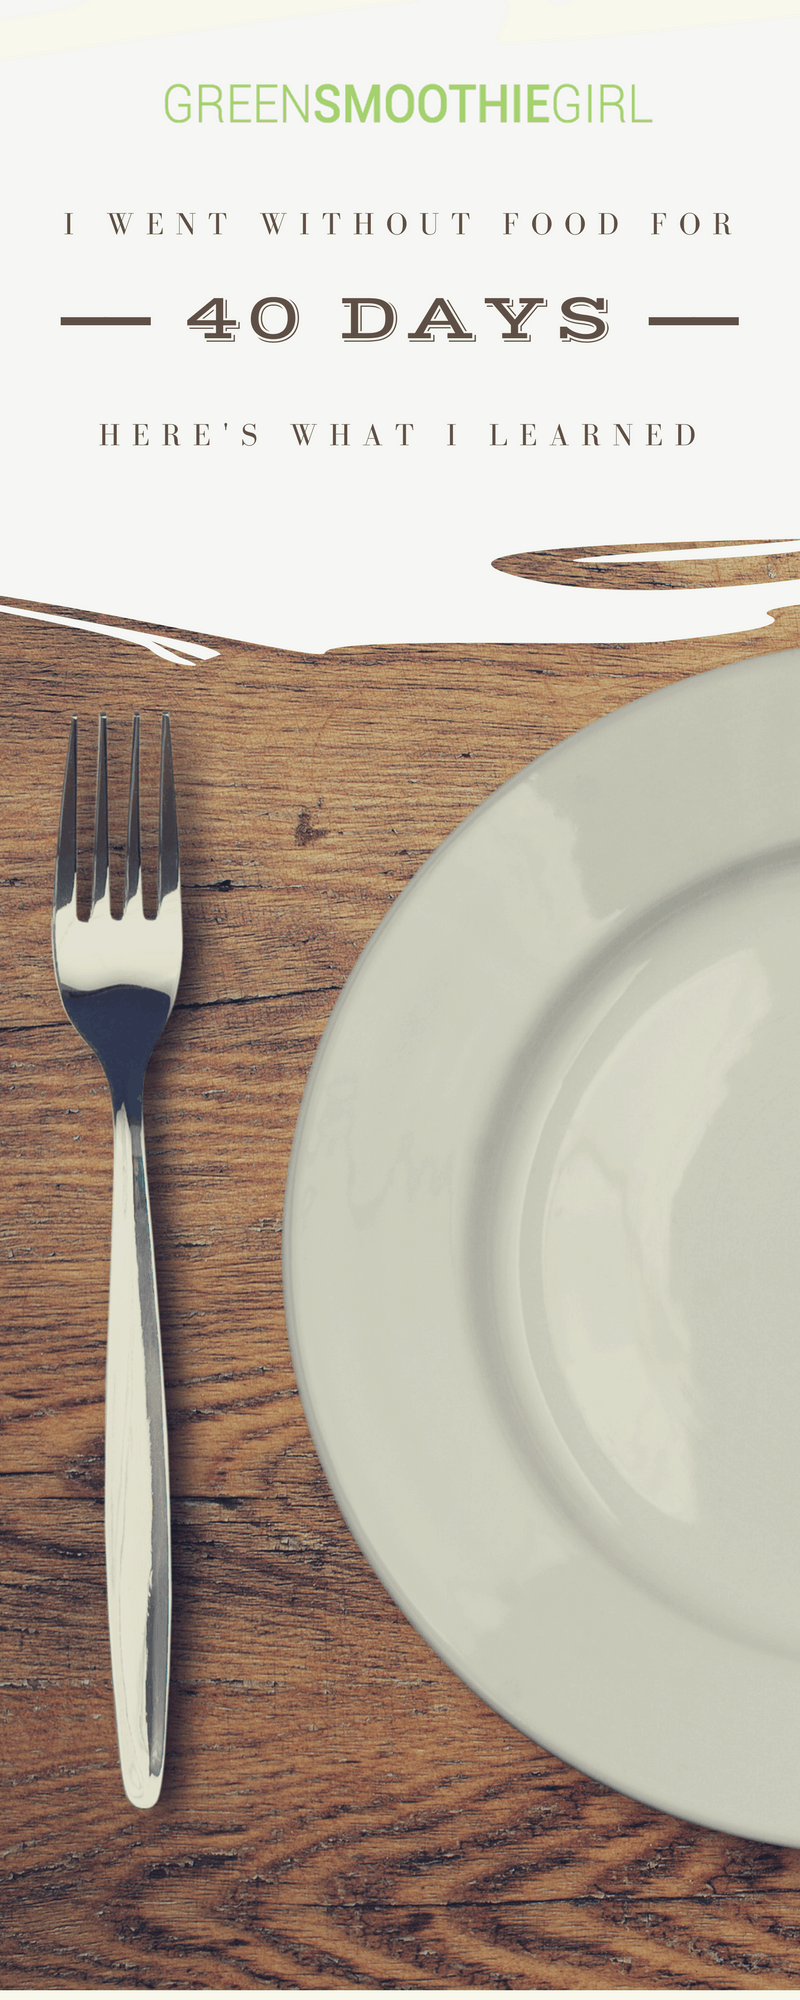 Placard | I Went Fasting Without Food for 40 Days | Here's What I Learned